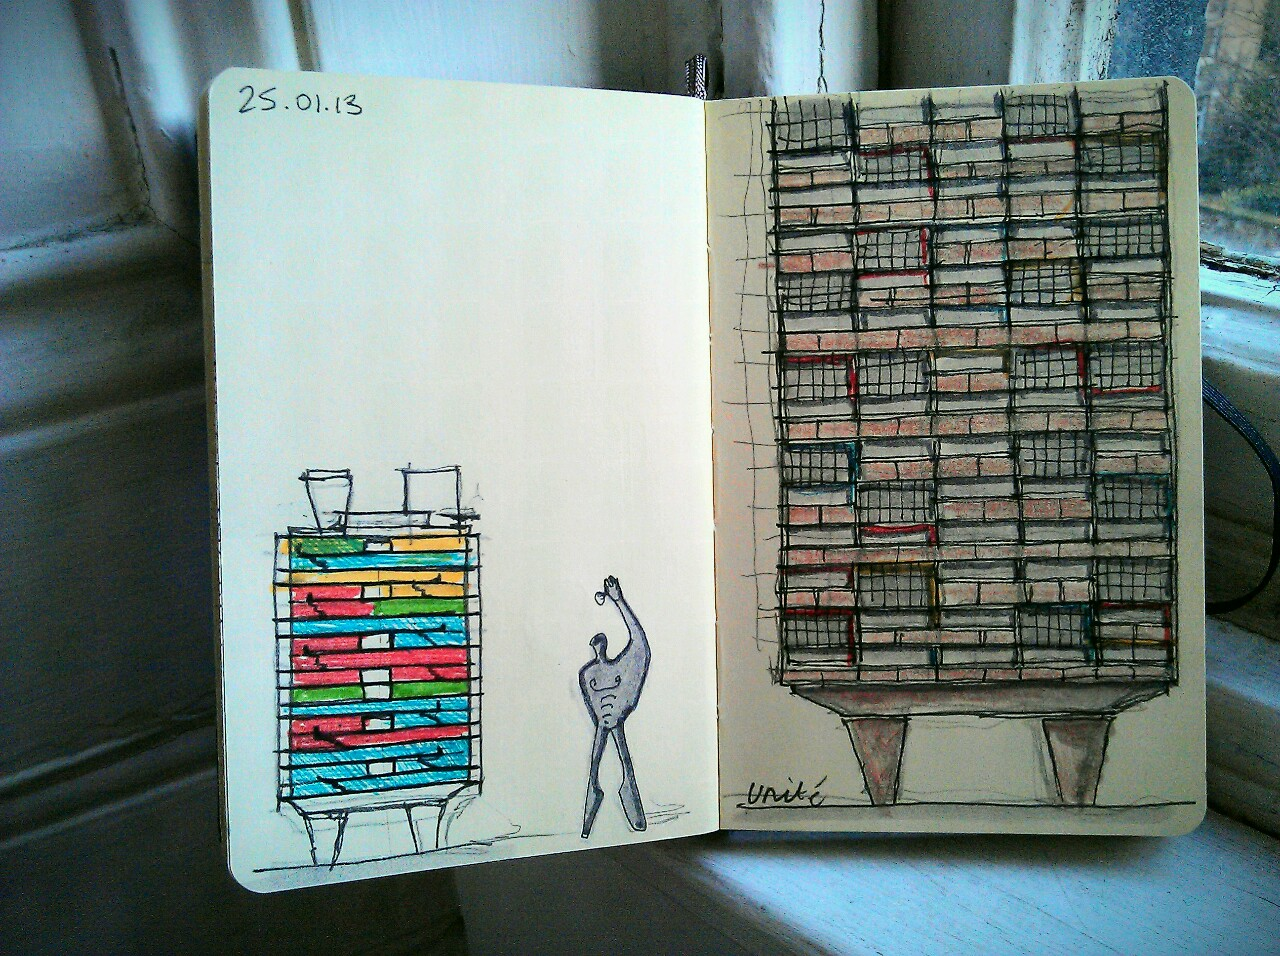 365 drawings later … day 360 … unité